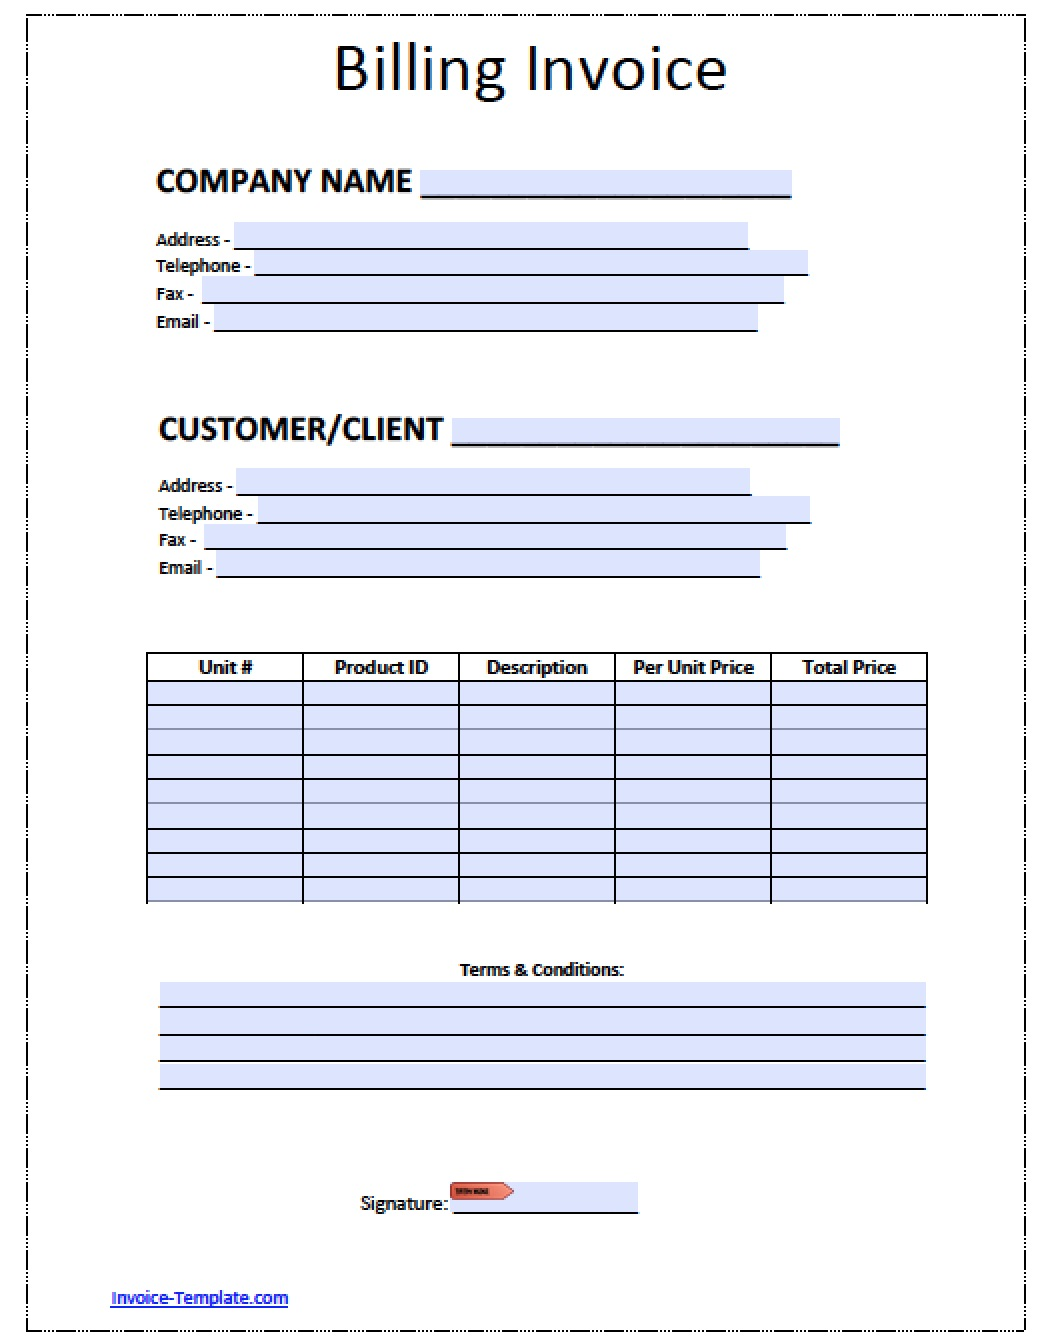 Free Billing Invoice Template Excel PDF Word Doc - Invoice creator free download for service business